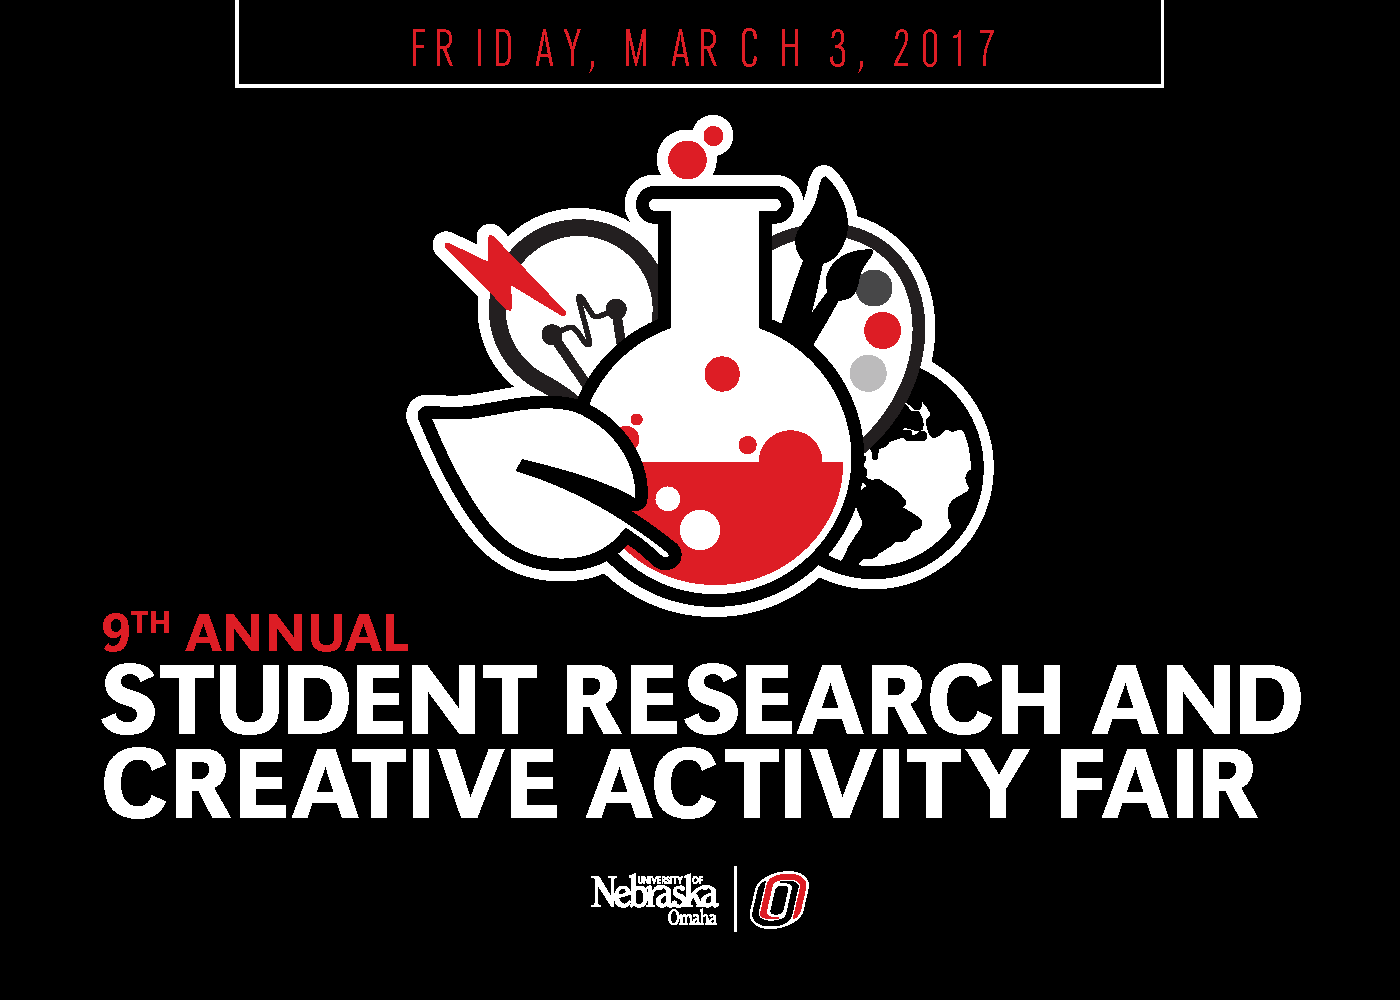 2017 Student Research and Creative Activity Fair